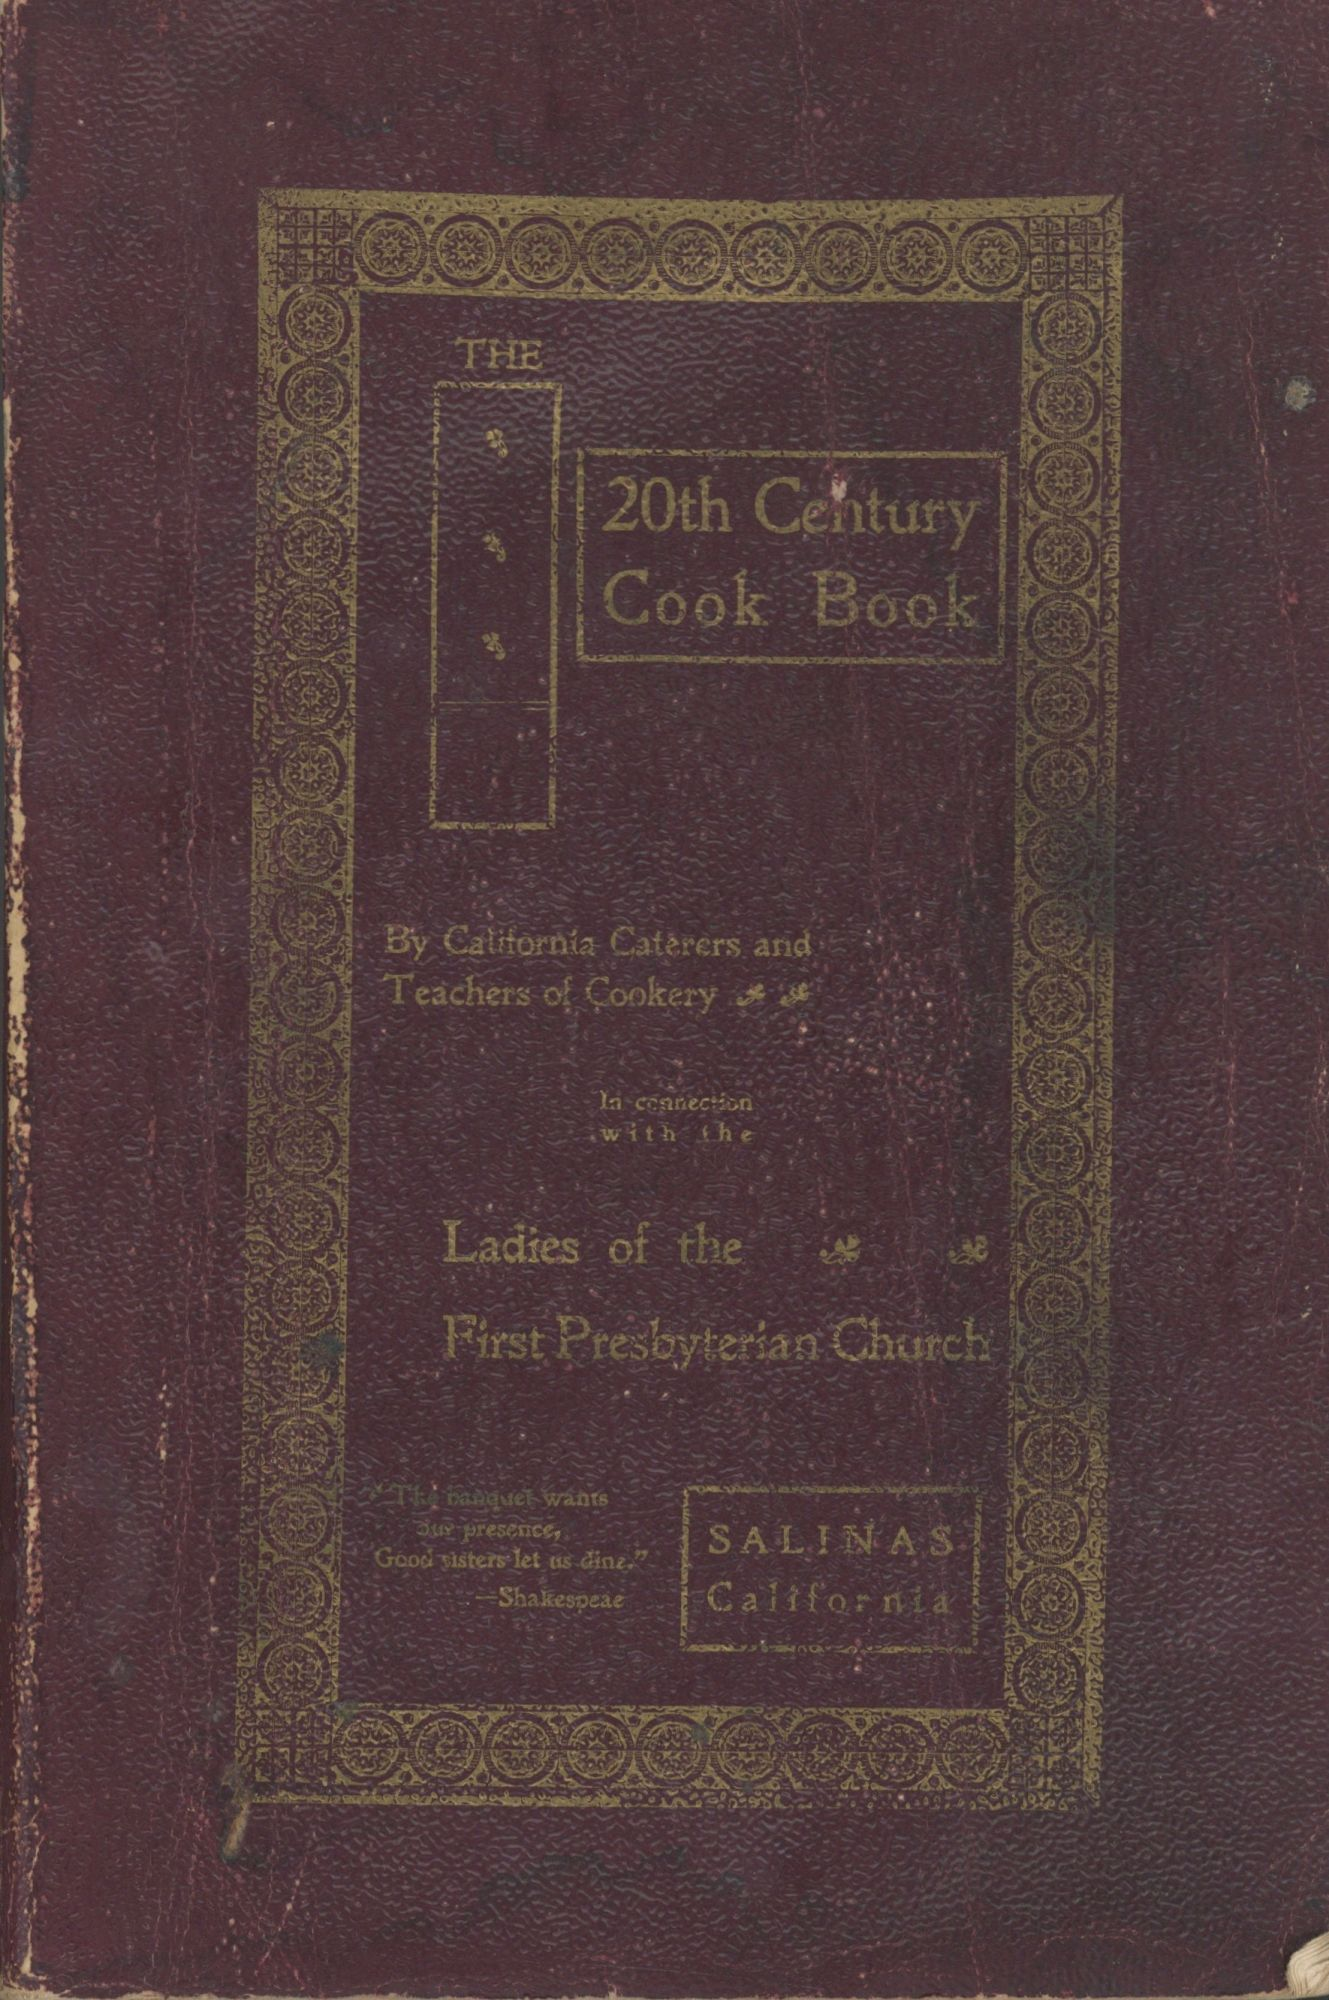 The Twentieth Century Cook Book. By California Caterers and Teachers of Cookery in Connection with the Ladies of the First Presbyterian Church. First Presbyterian Church, Ladies of the Church, Calif Salinas.